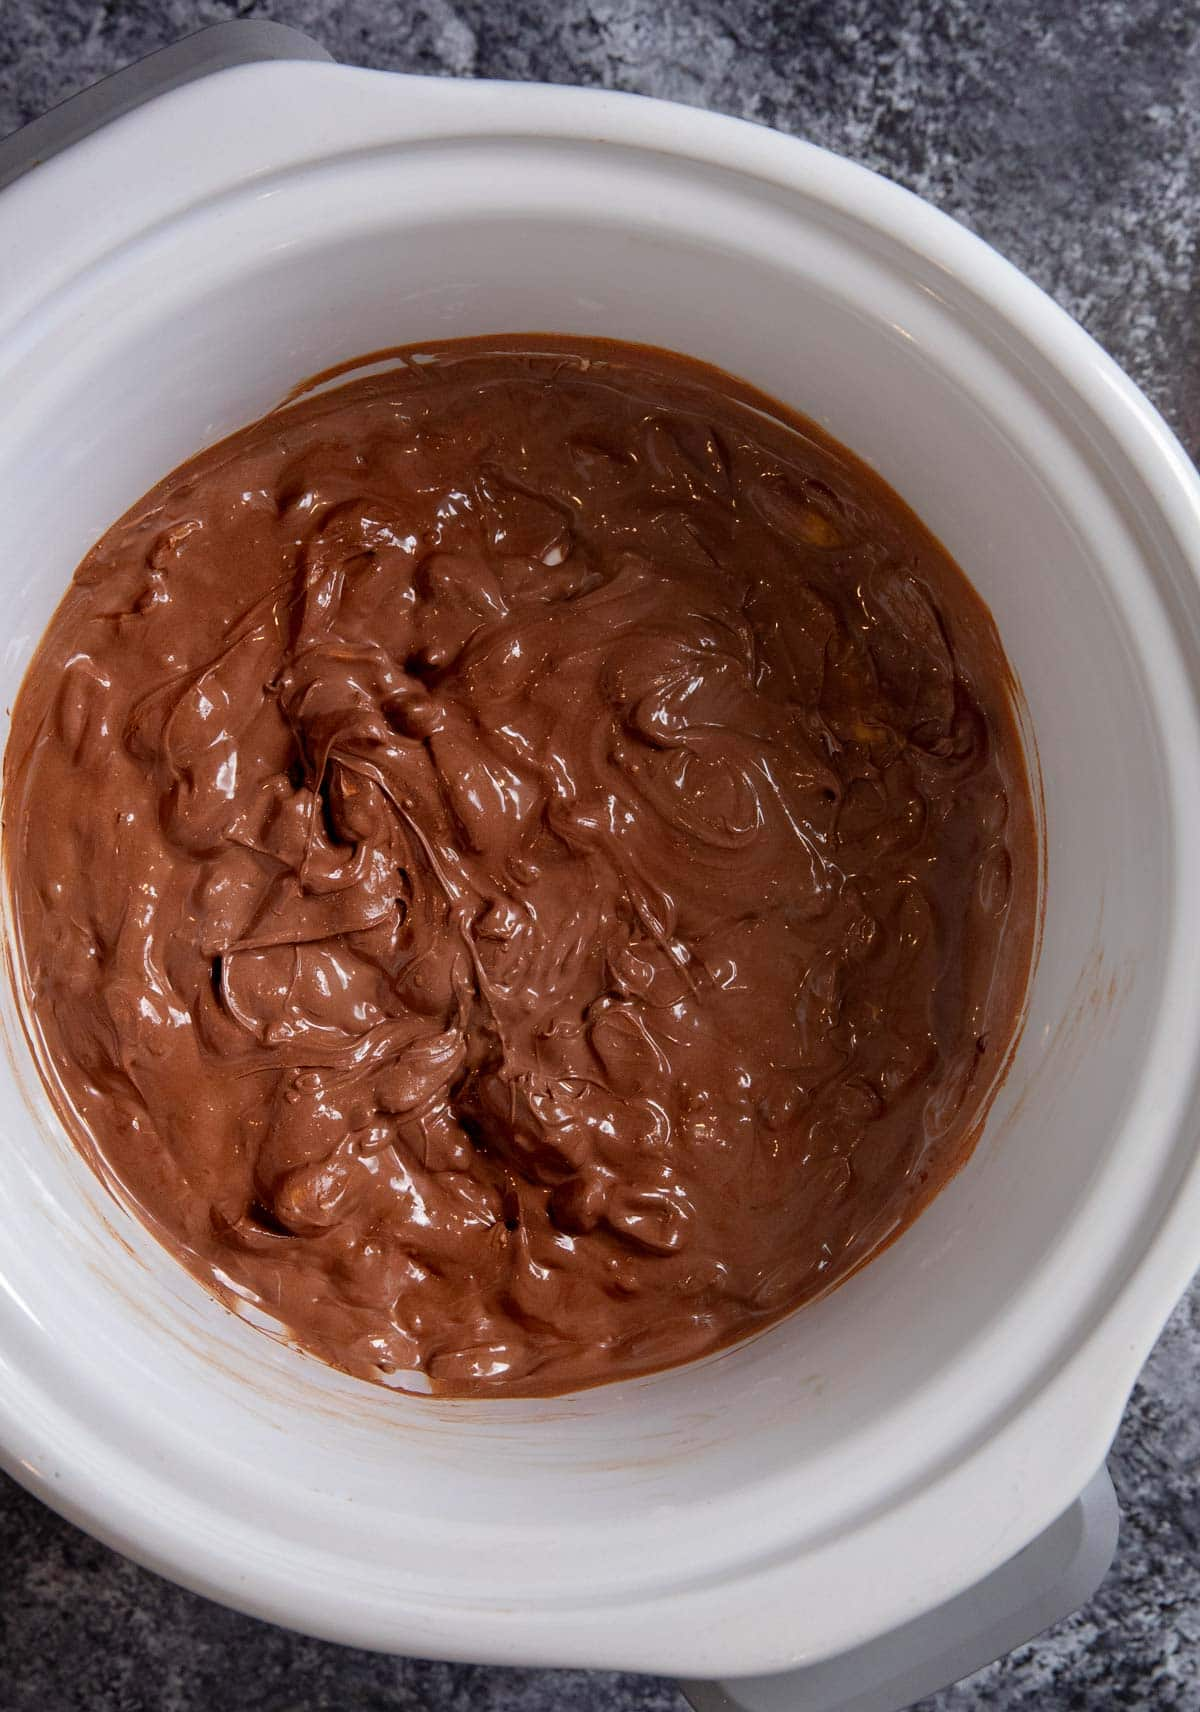 Slow Cooker Chocolate Candy melted chocolate and peanuts in crockpot